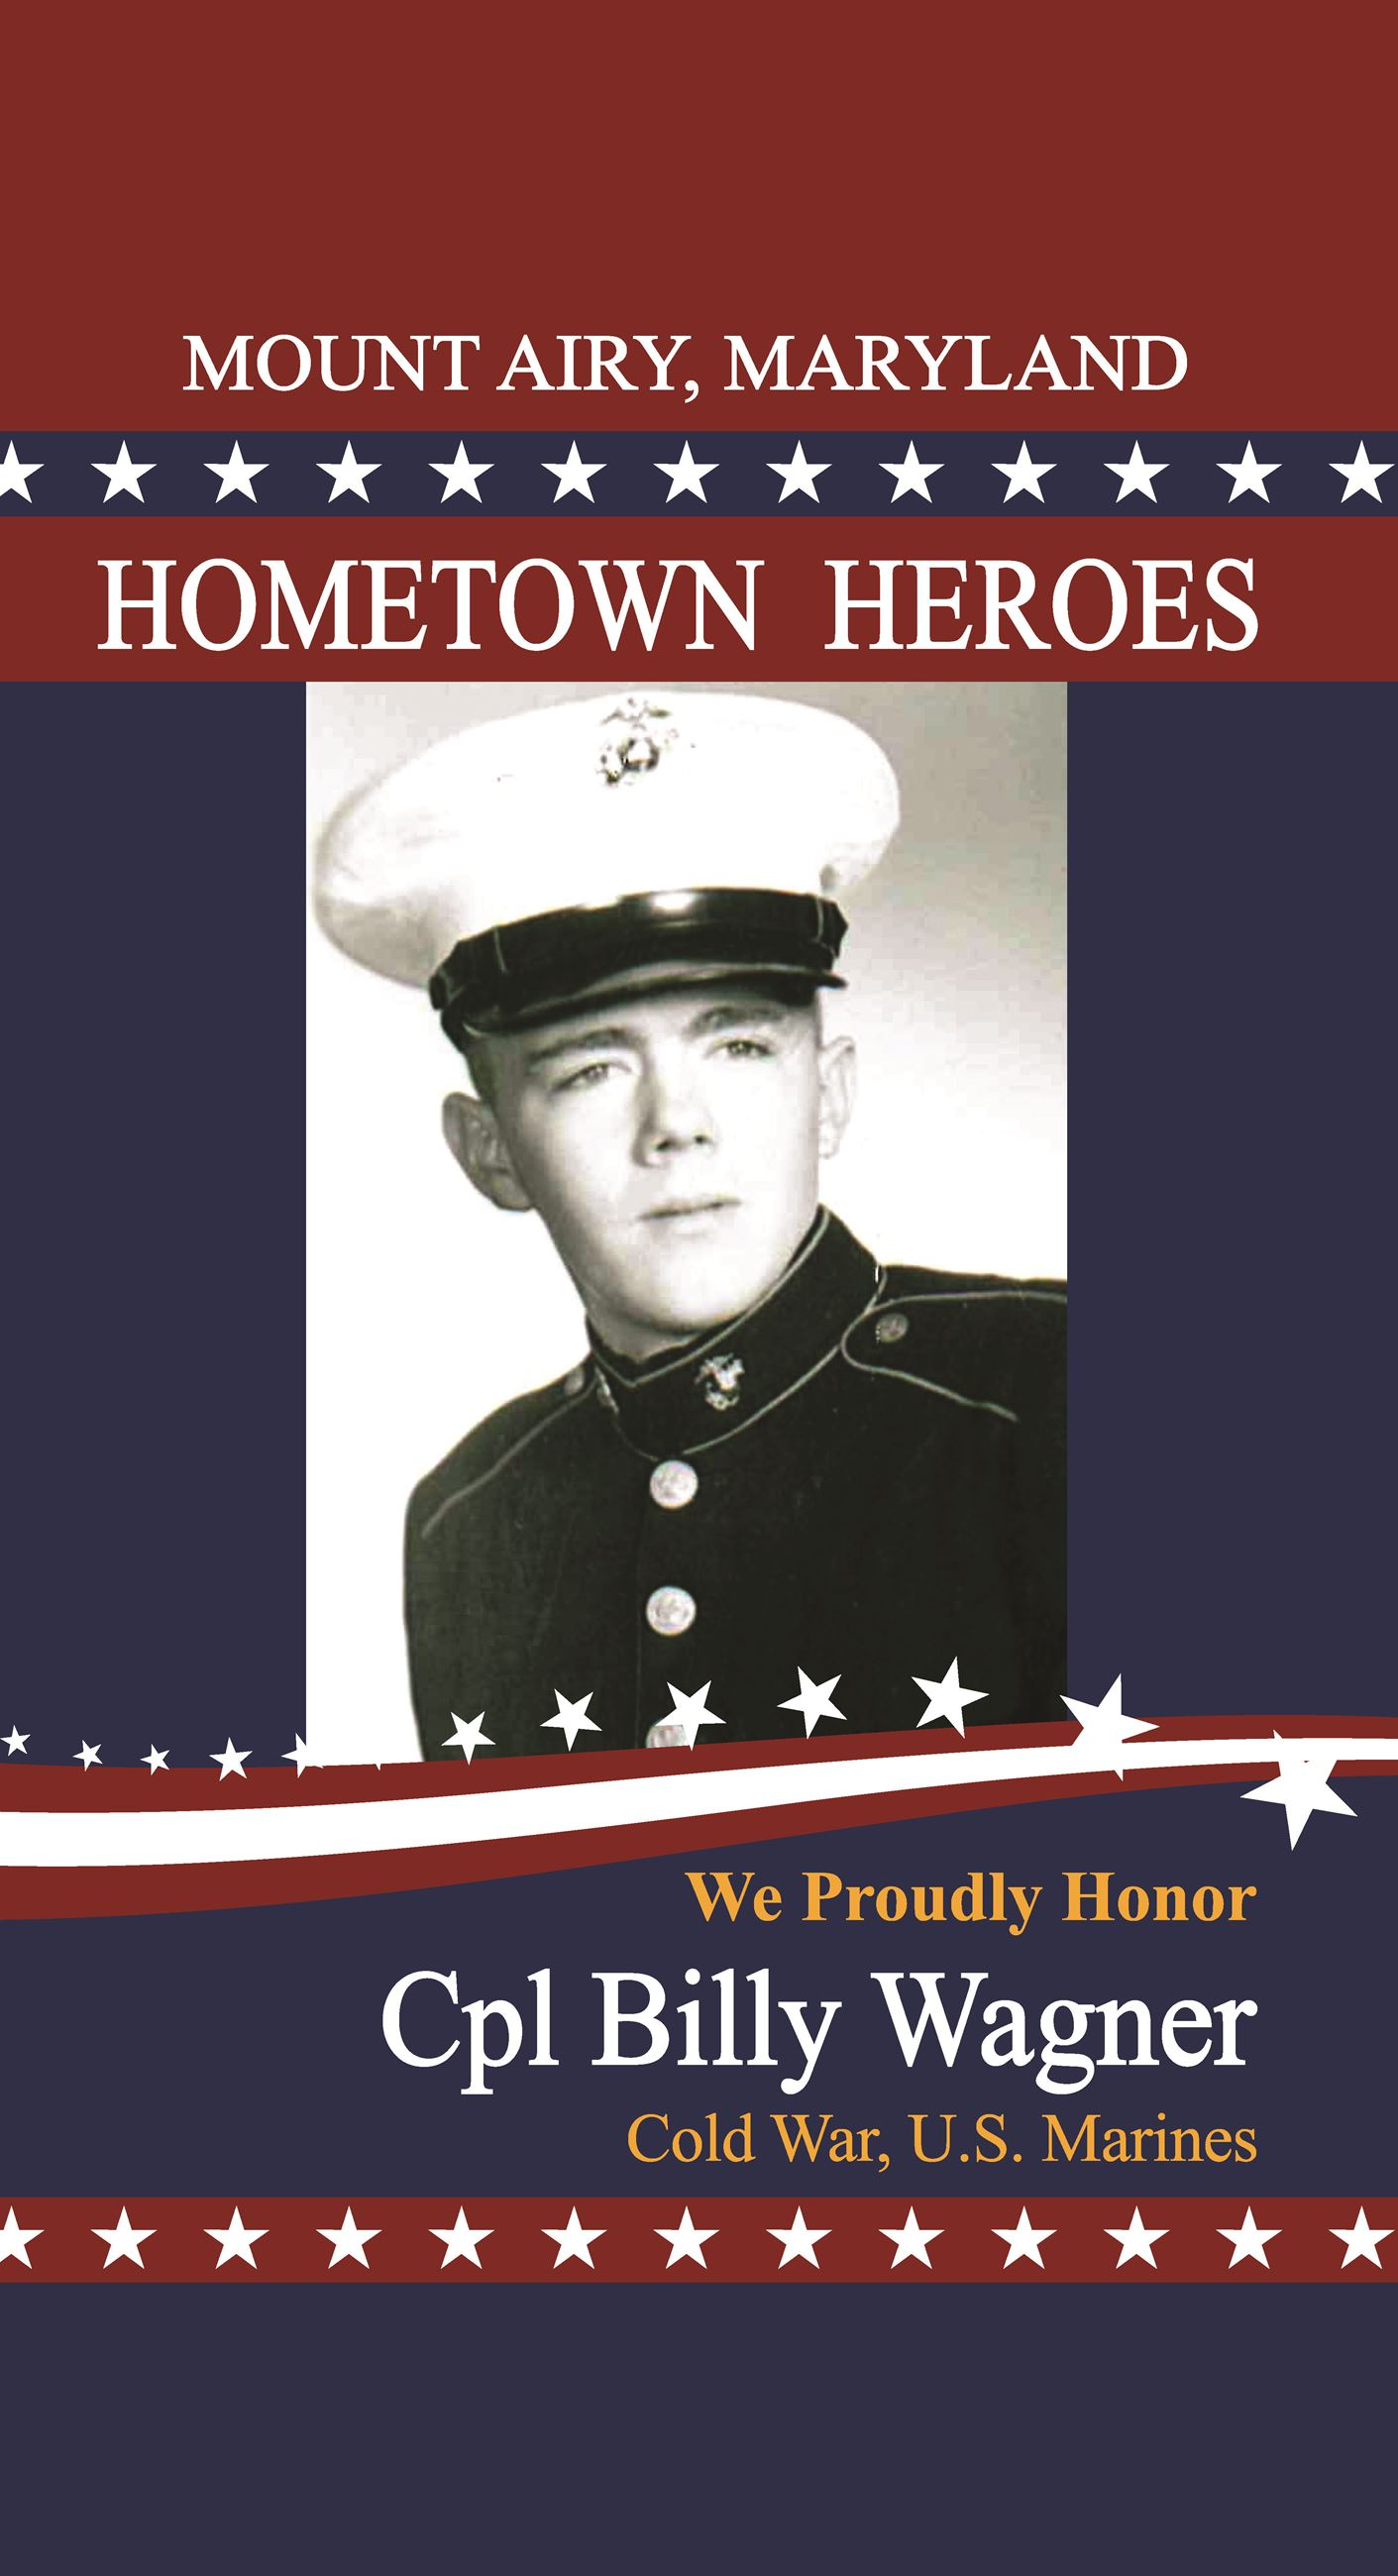 BillyWagner_MtAiryHeroes-Flag-24x44-Proof001